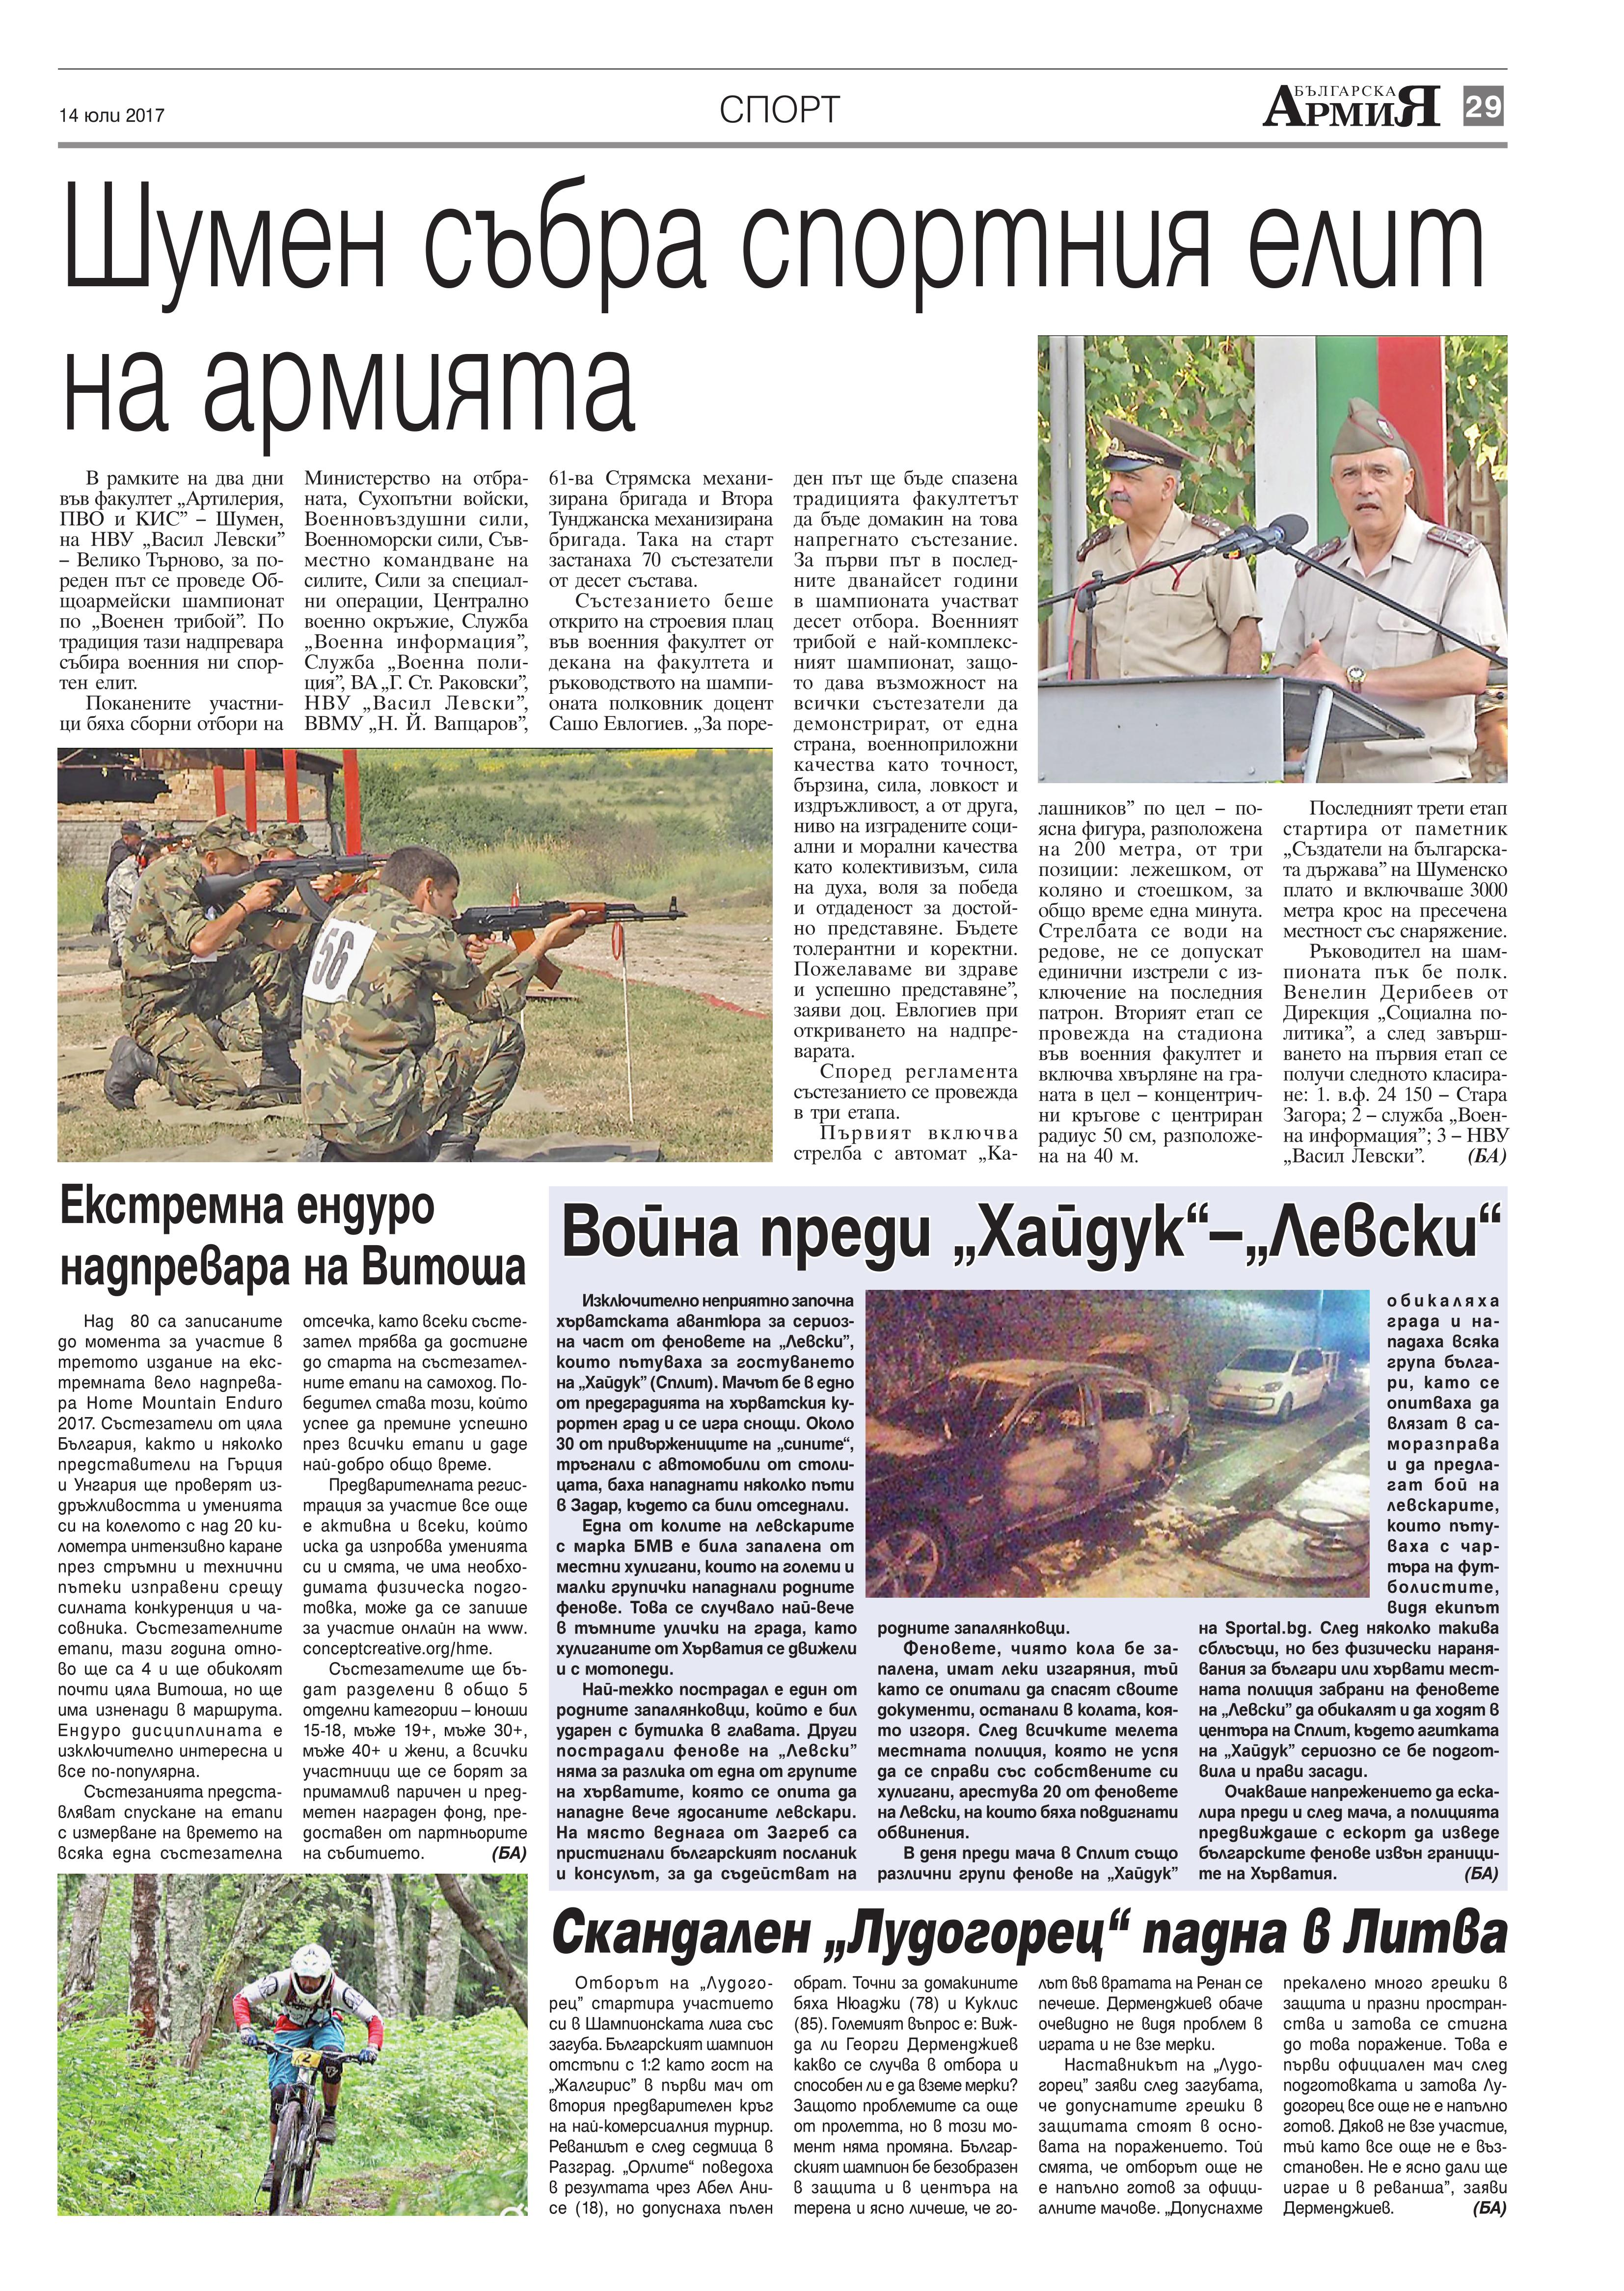 https://www.armymedia.bg/wp-content/uploads/2015/06/29.page1_-23.jpg